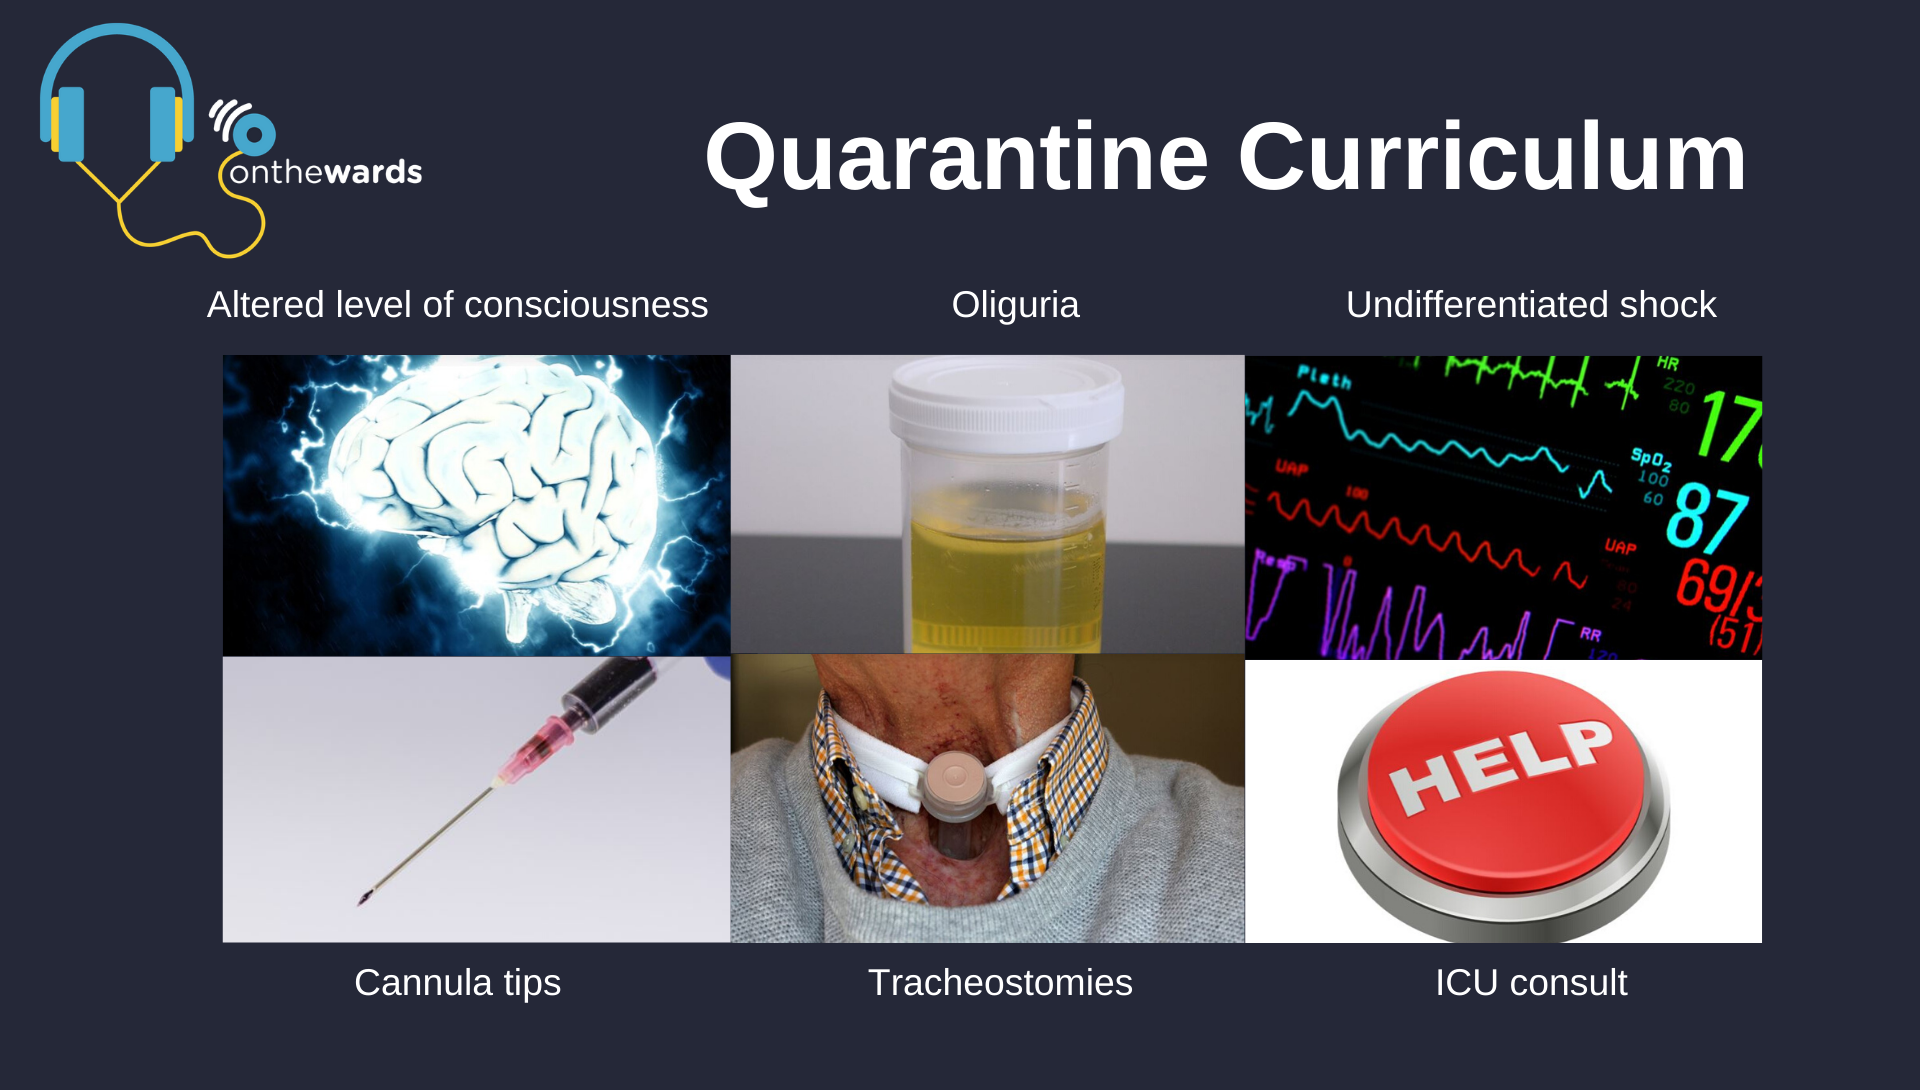 Podcasts on cannula tips & tricks,managing undifferentiated shock, tips for managing patients with oliguria, tracheostomies, and looking at altered levels of consciousness